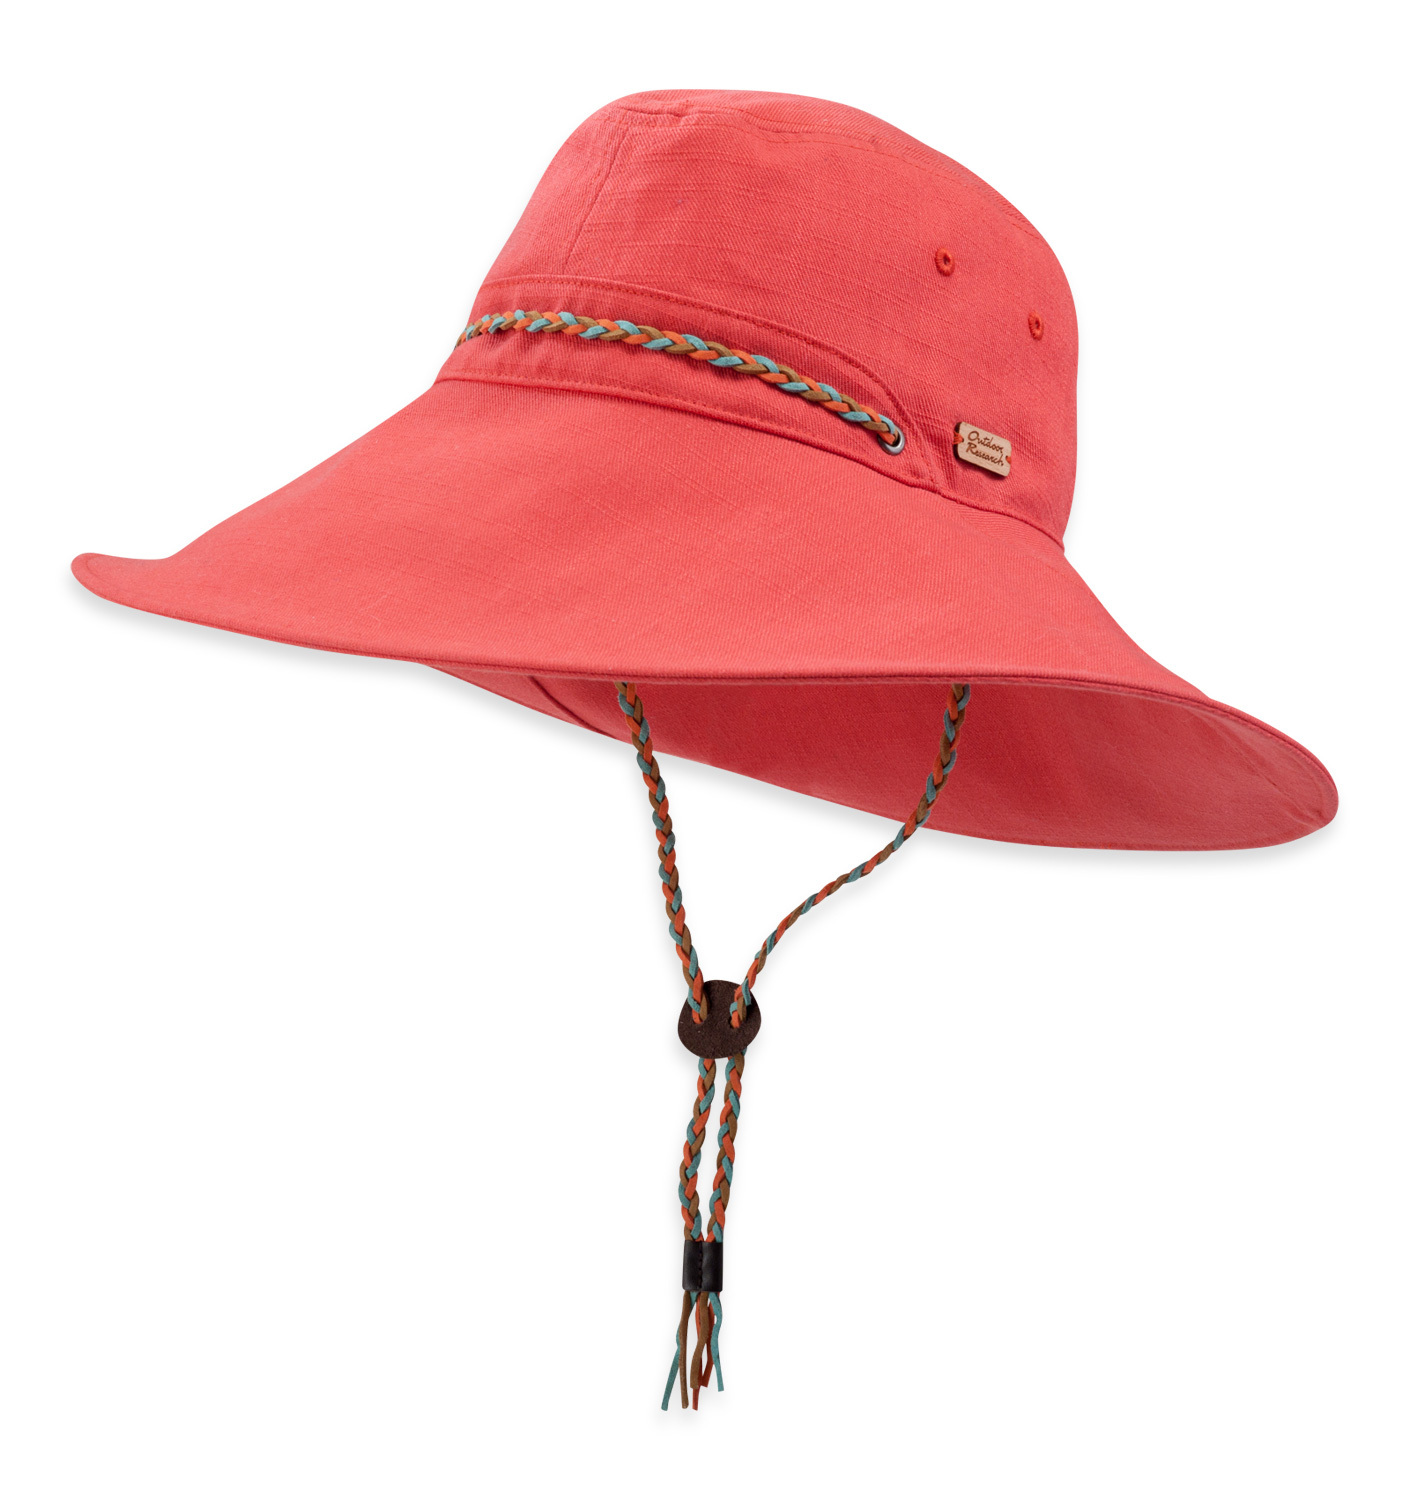 b9e367043917d6 Women's Mojave Sun Hat - flame | Outdoor Research